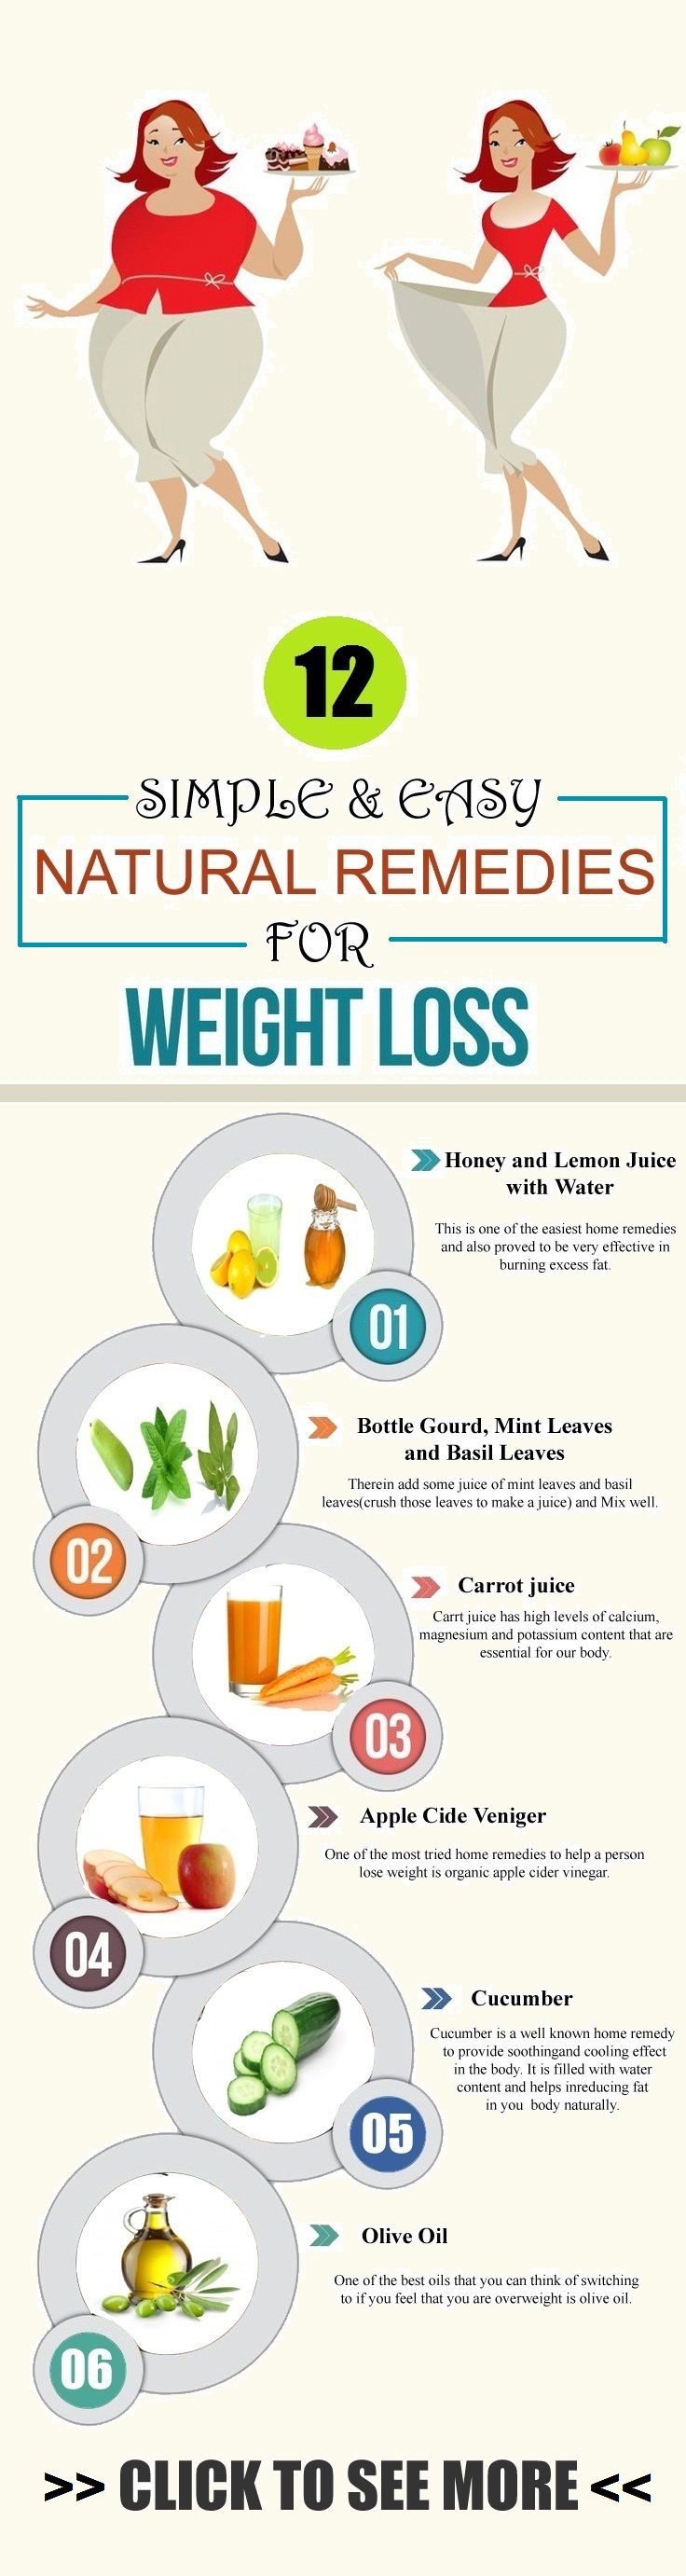 12 Simple & Easy Natural remedies for weight loss fast http://www.4myprosperity.com/?page_id=19